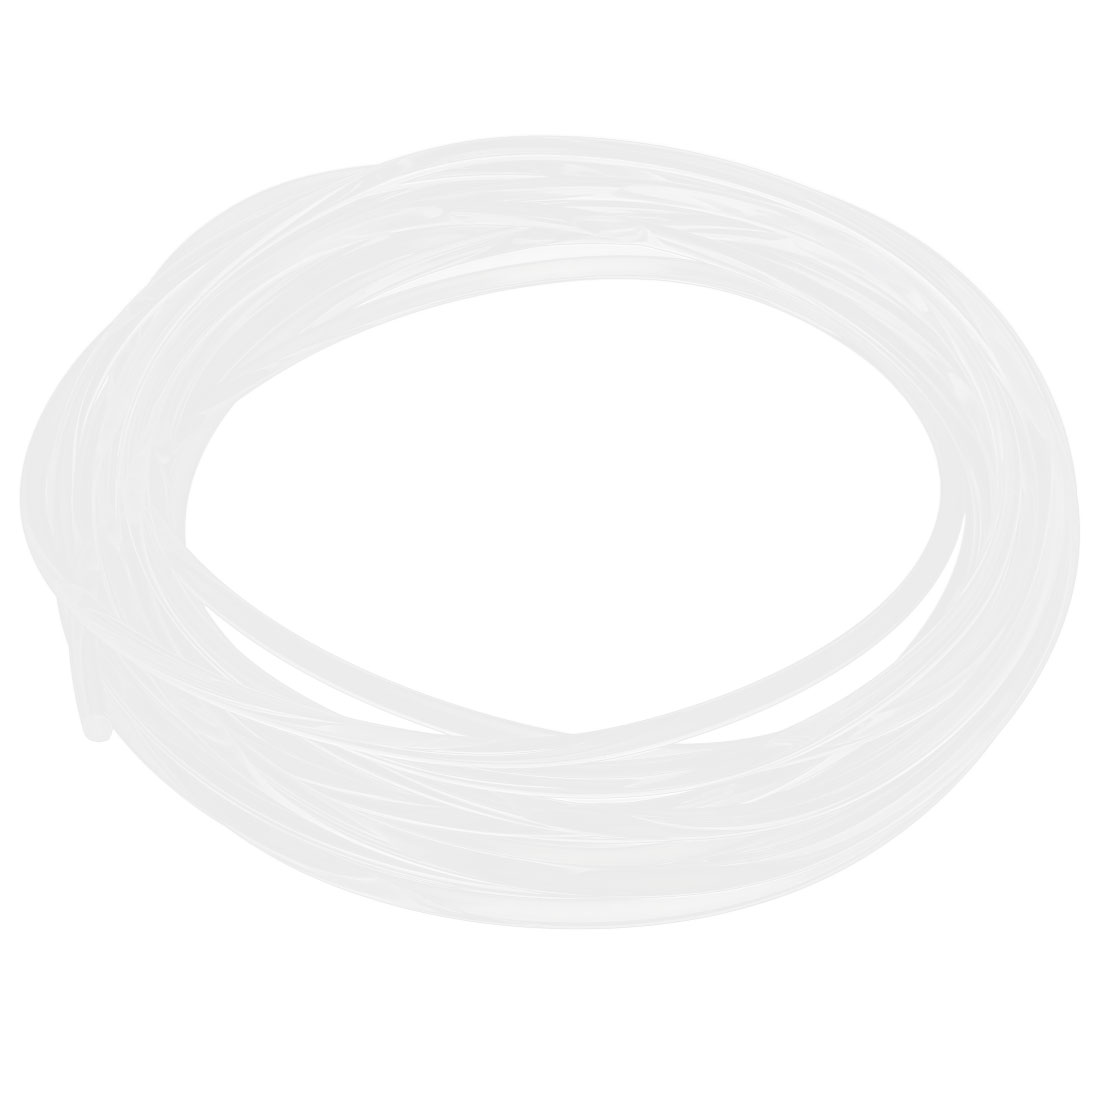 10m Length 5mm Dia Clear LED Fiber Optic Light for Home Car Decor